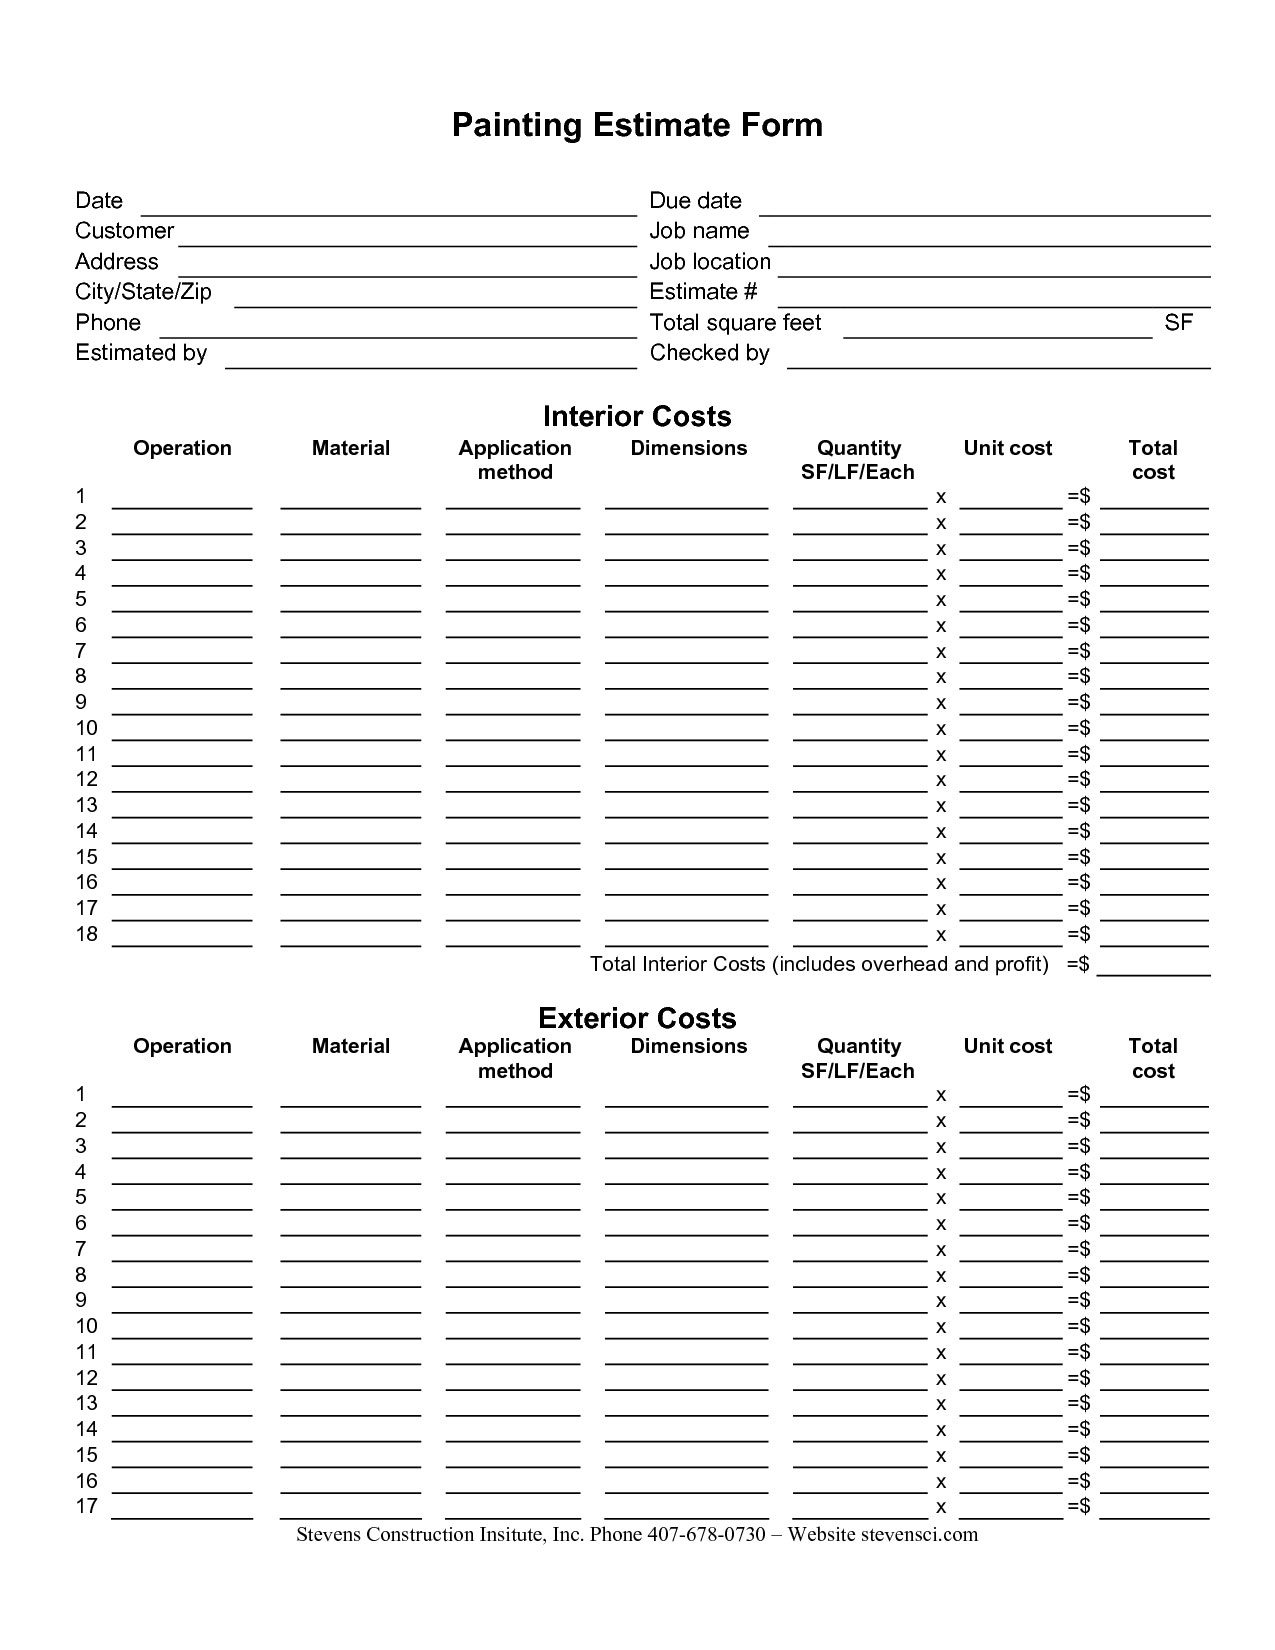 Painting Estimate Form Sample | Painting Estimate Sheet Templates